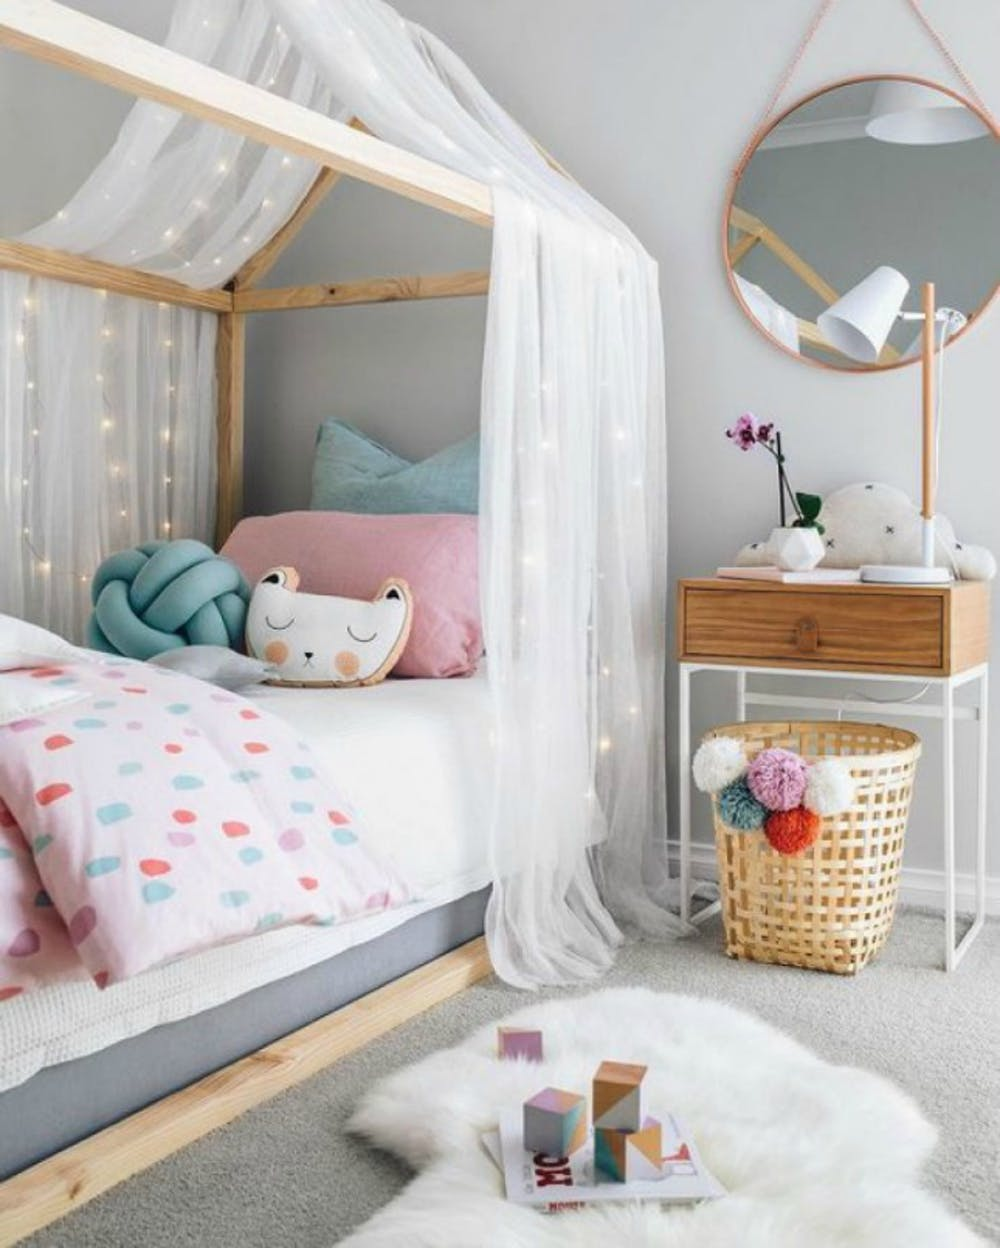 Hygge inspired kids room with canopy bed white semitransparent curtains string lights white fur rug woven basket with colorful pom pom